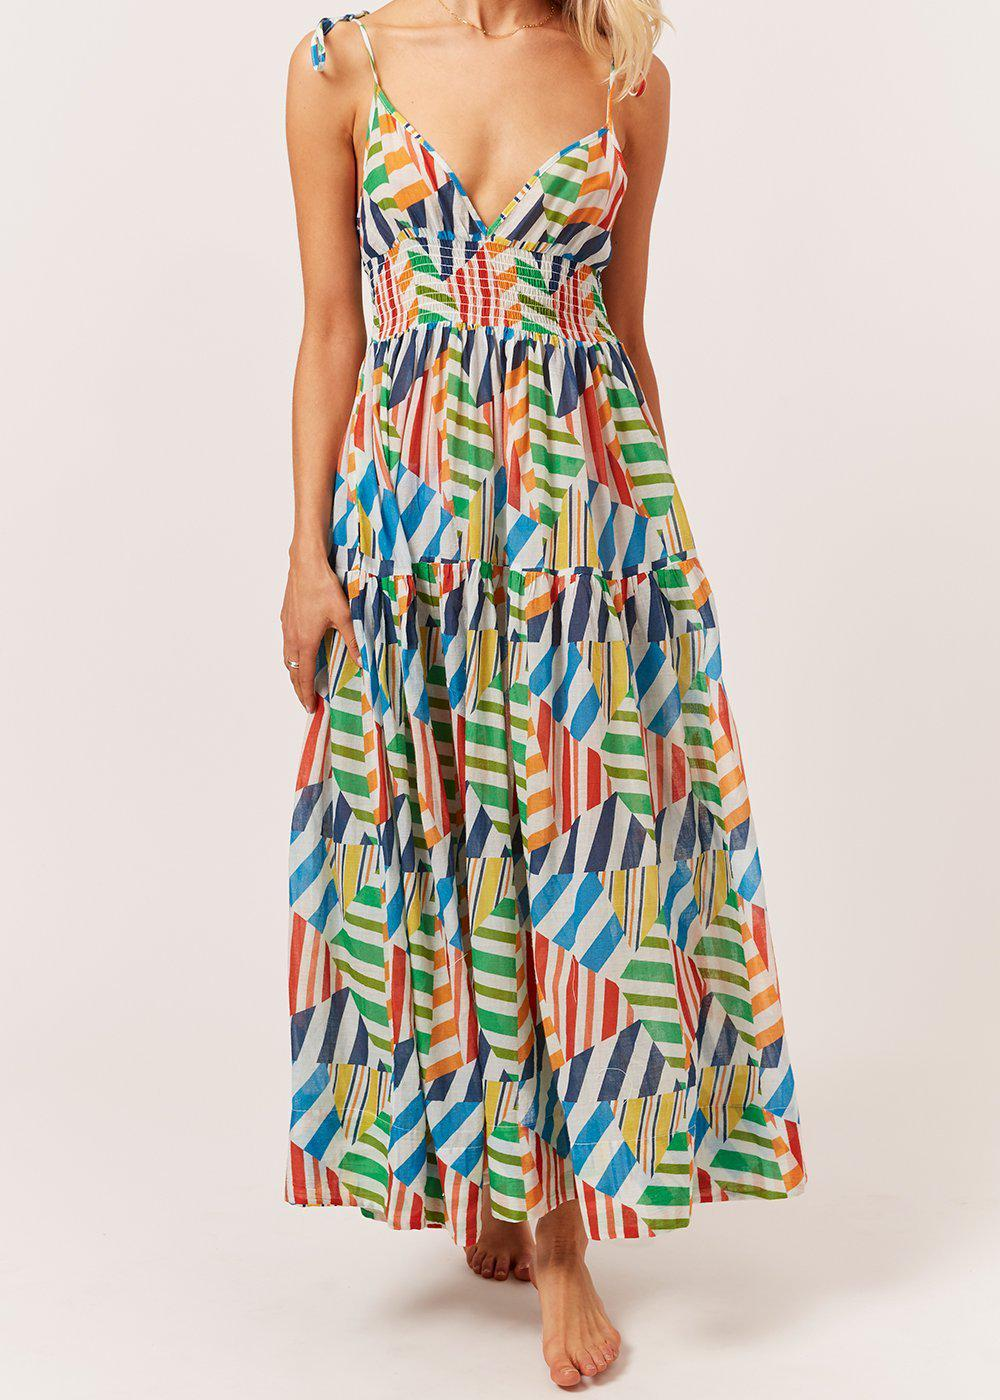 The Melody Dress